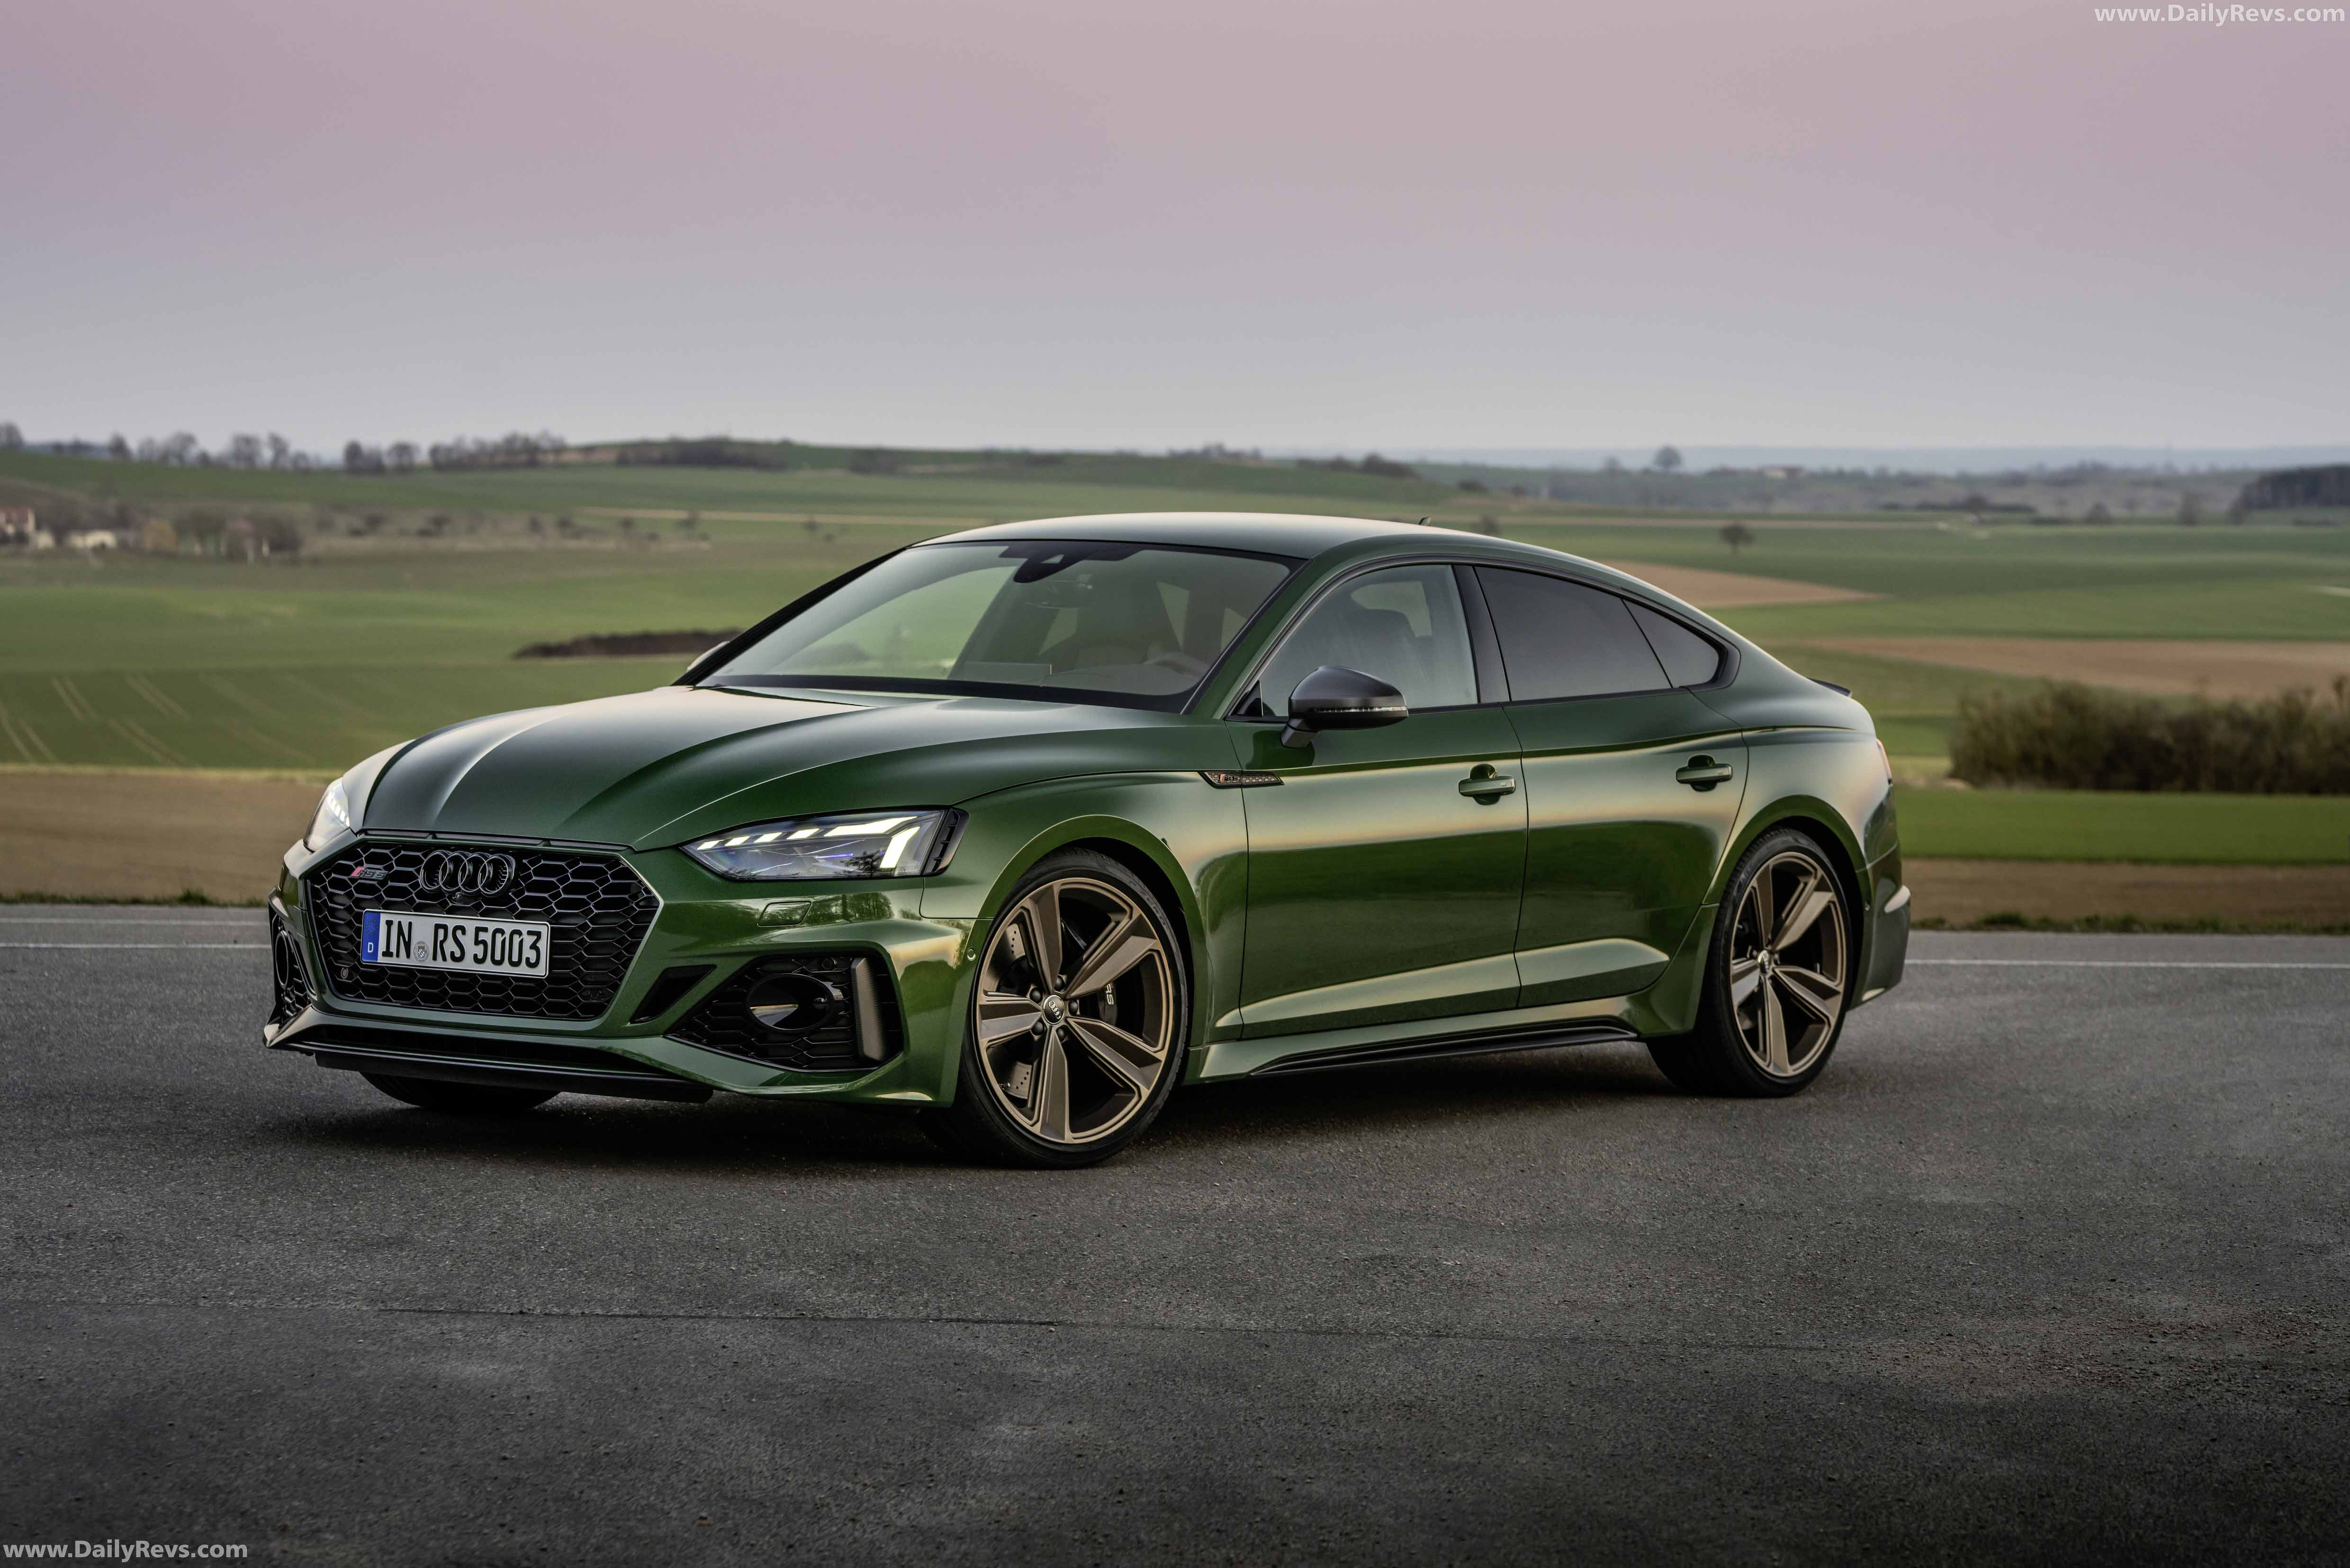 2020 Audi RS5 Sportback - HD Pictures, Videos, Specs & Information - Dailyrevs